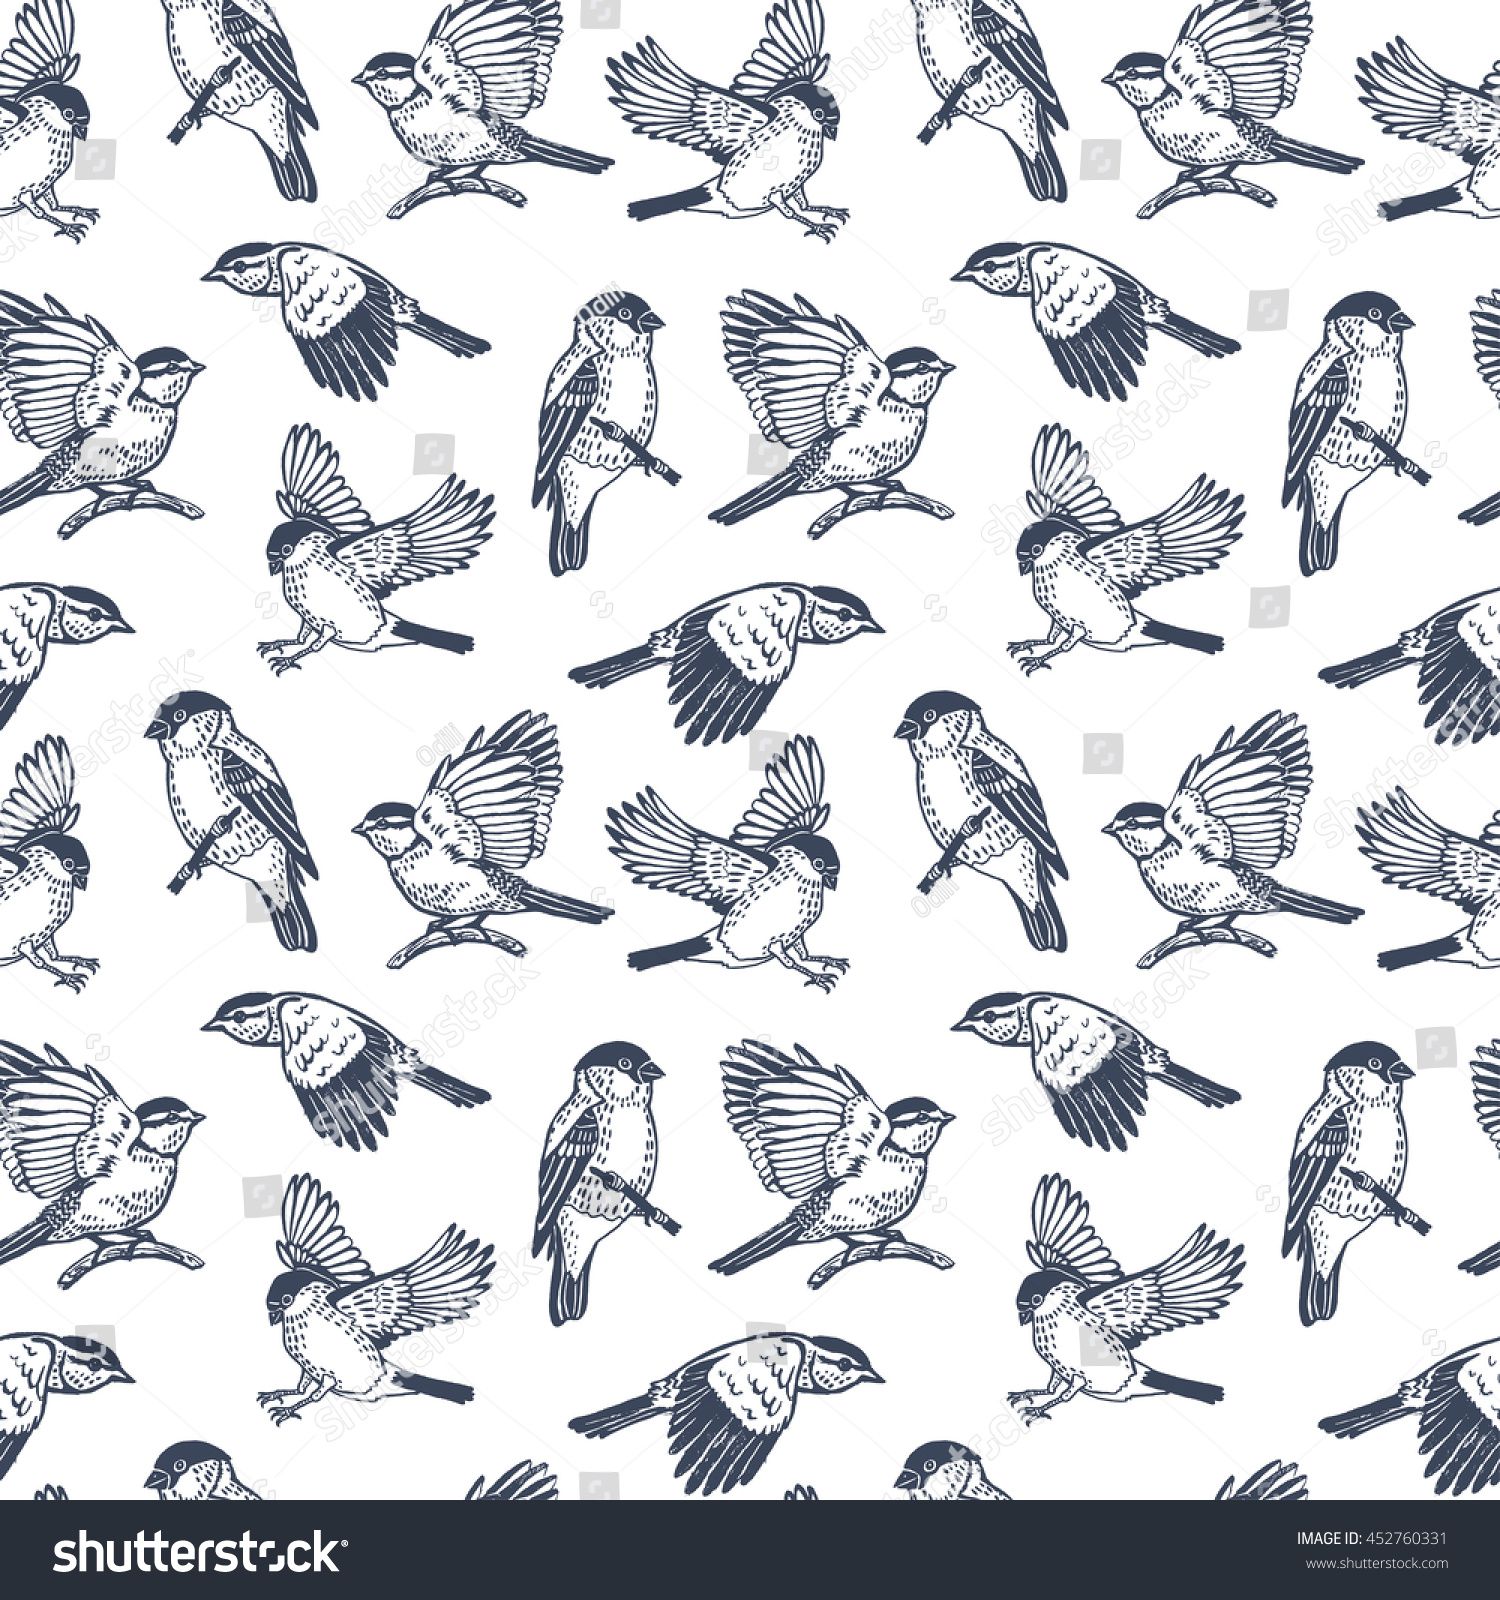 flying bird pattern seamless graphic background stock vector